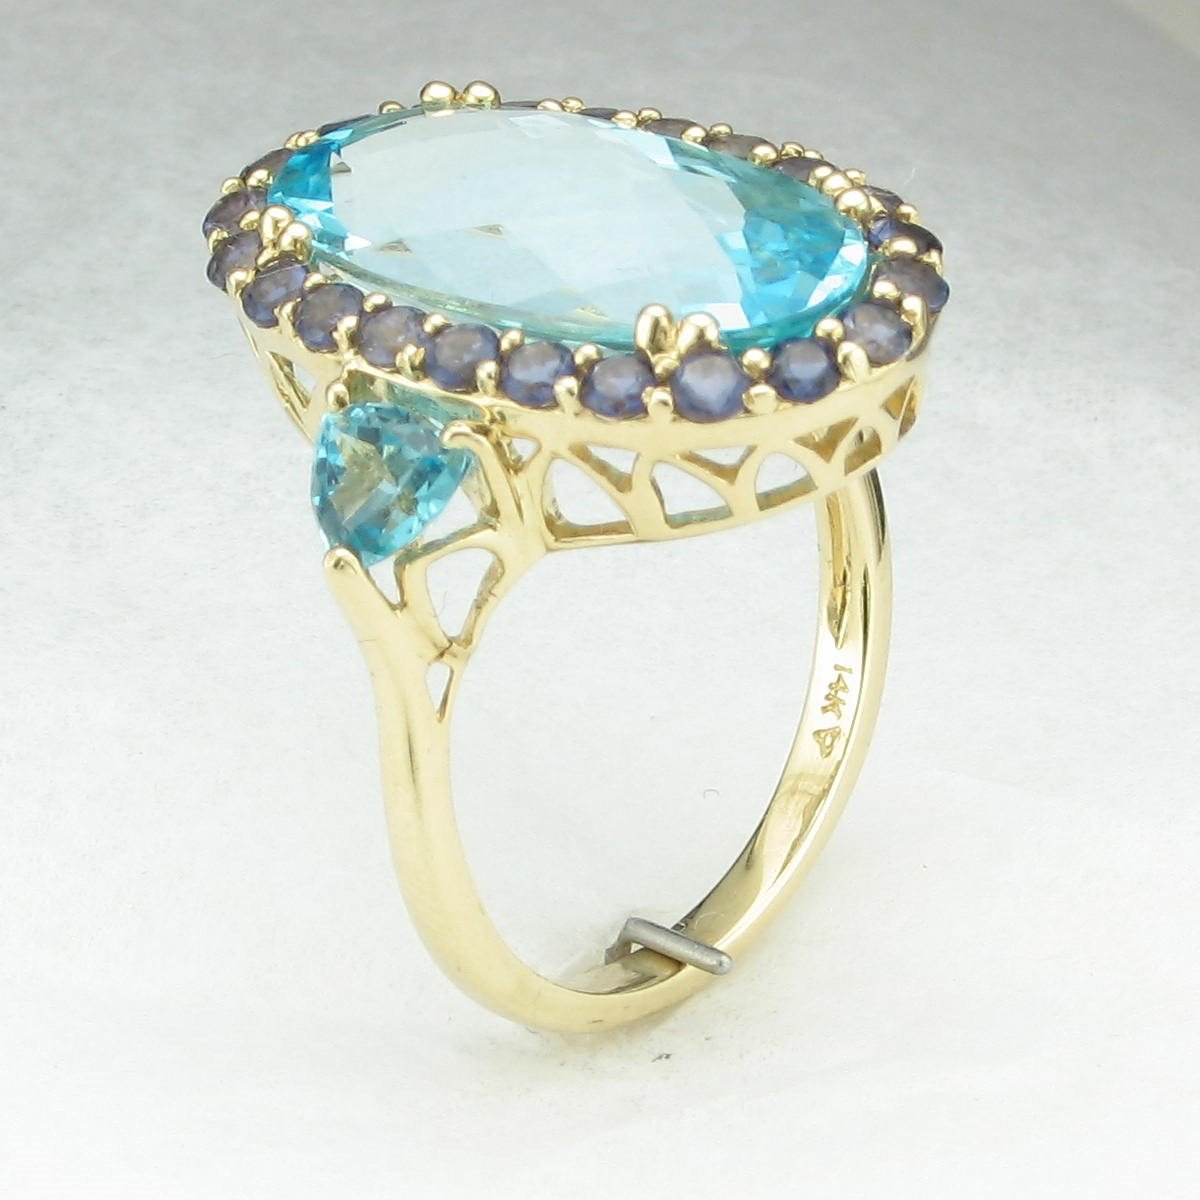 6.14ct Sky Blue Topaz and Iolite Halo Ring set in 14K Yellow Gold